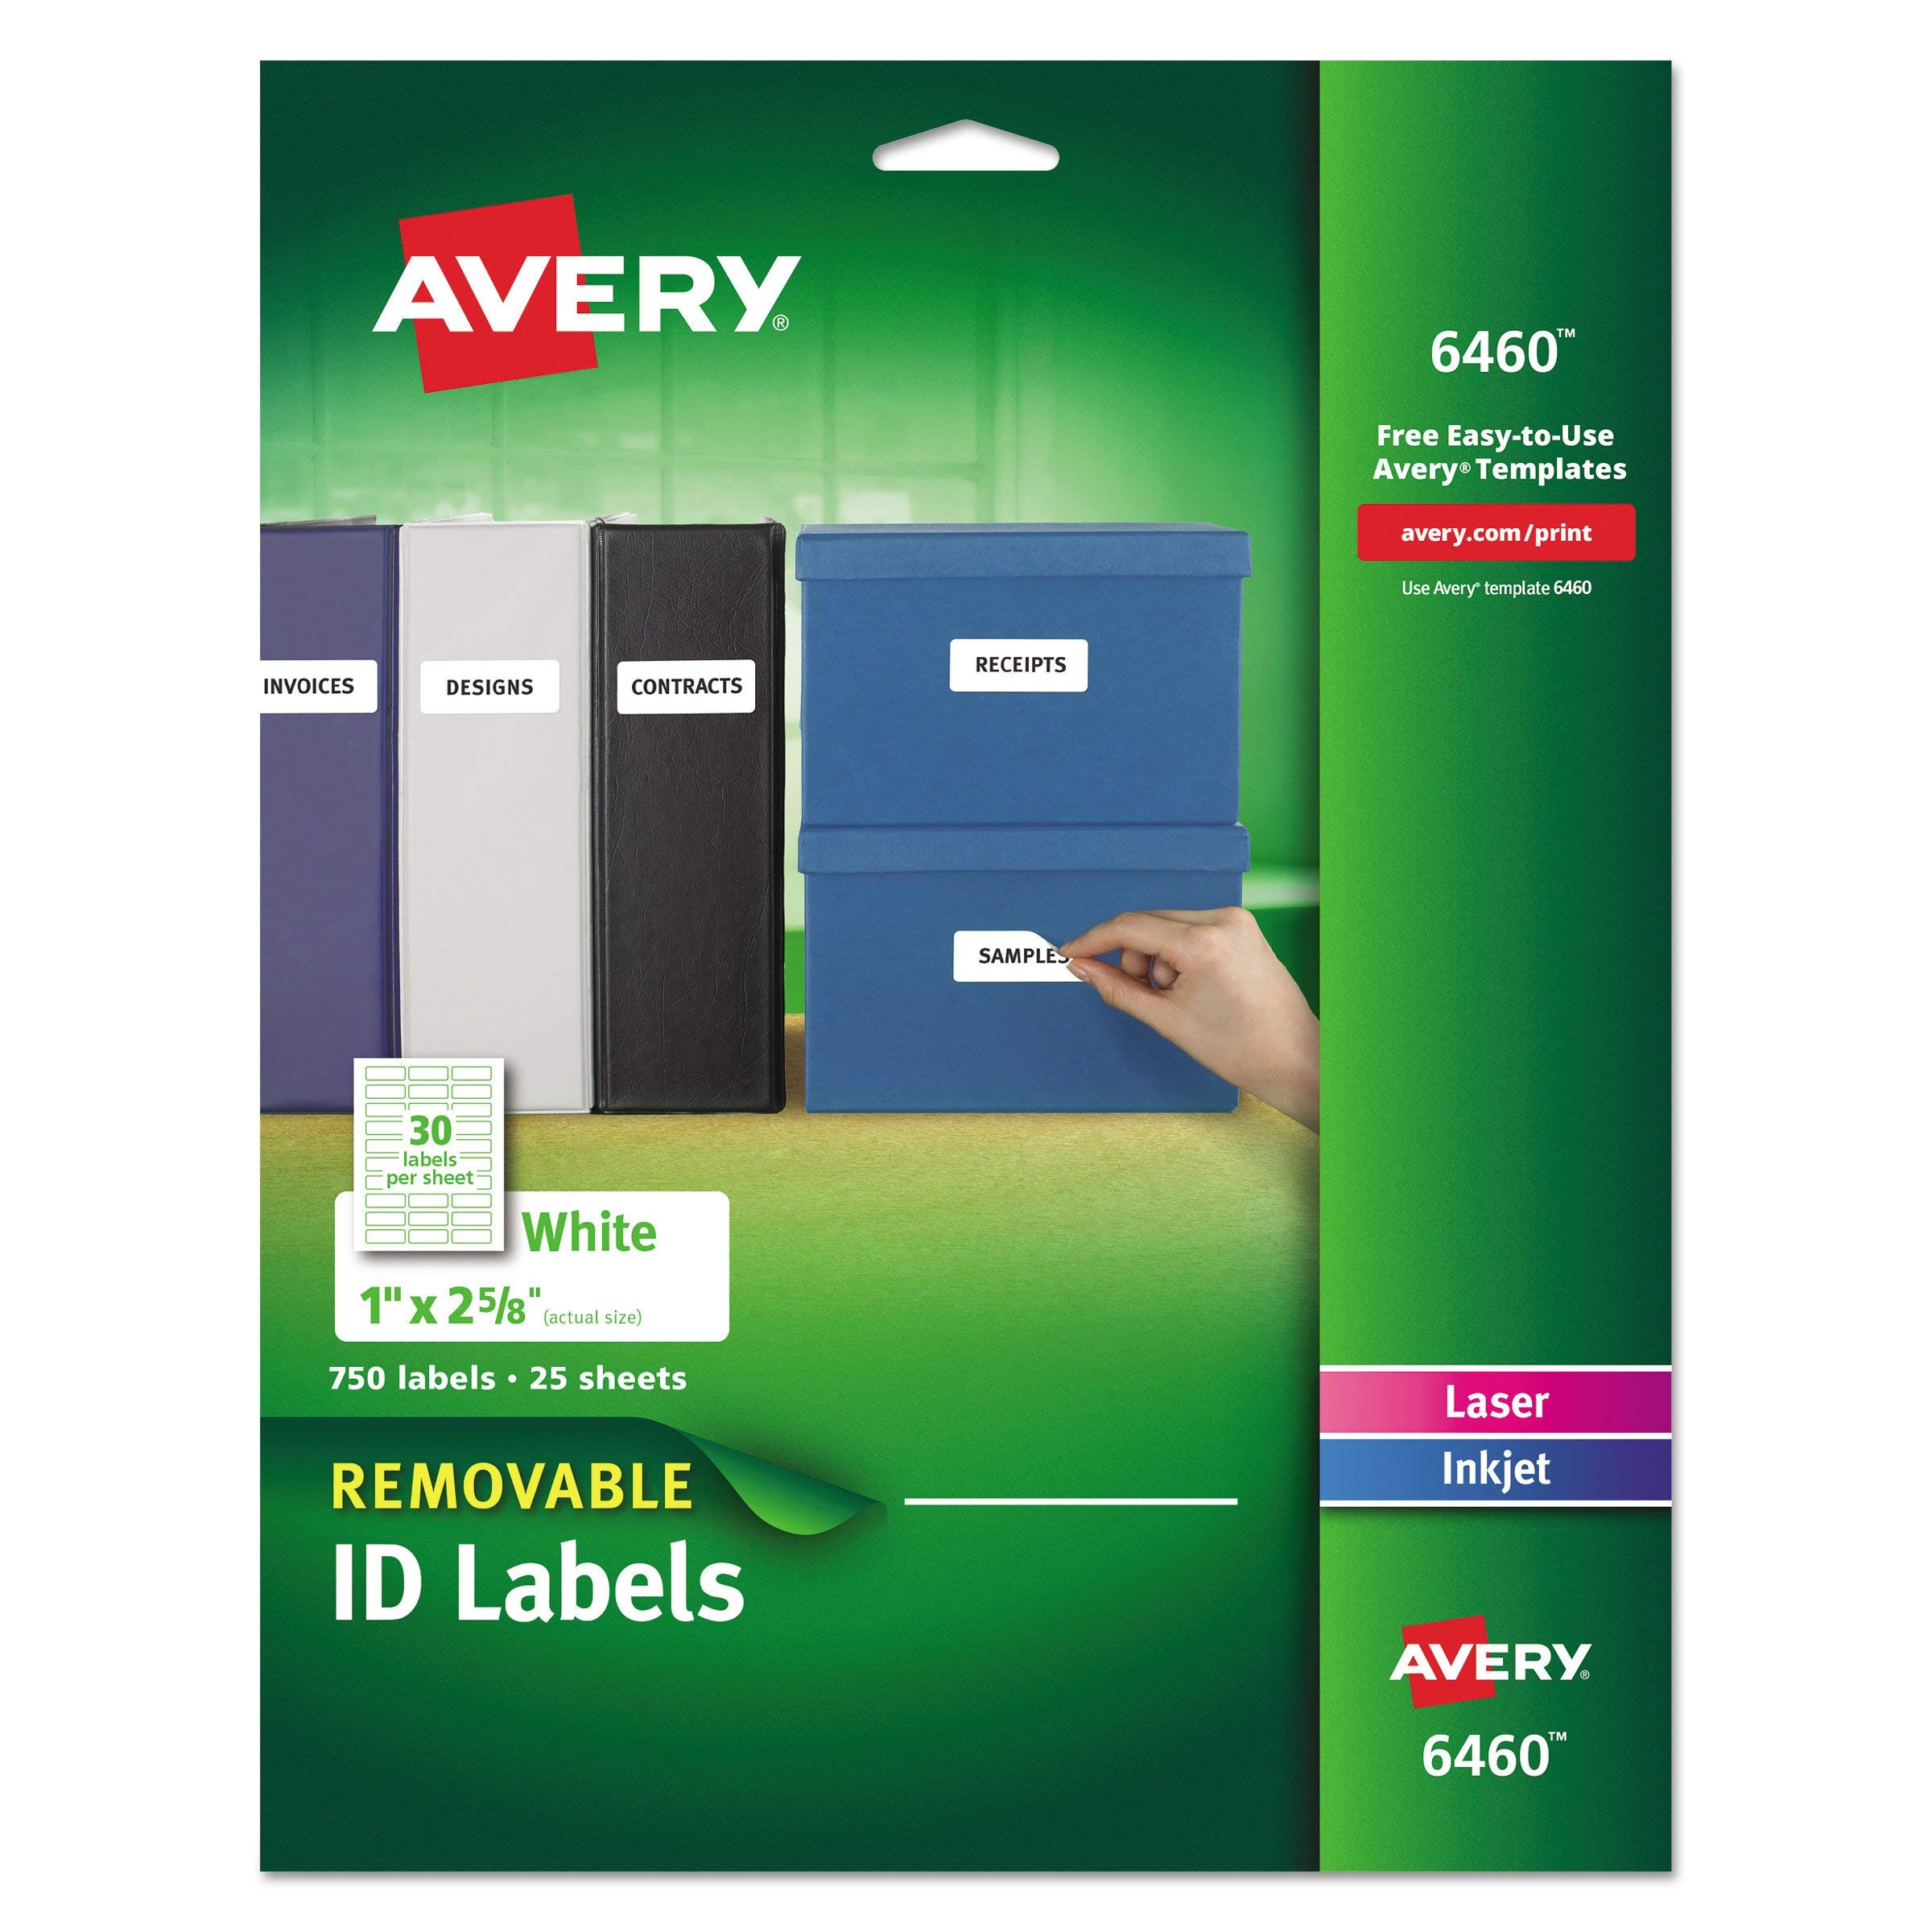 Avery Removable 1 x 2 5/8 Inch White ID Labels 750 Count (6460) (Renewed)